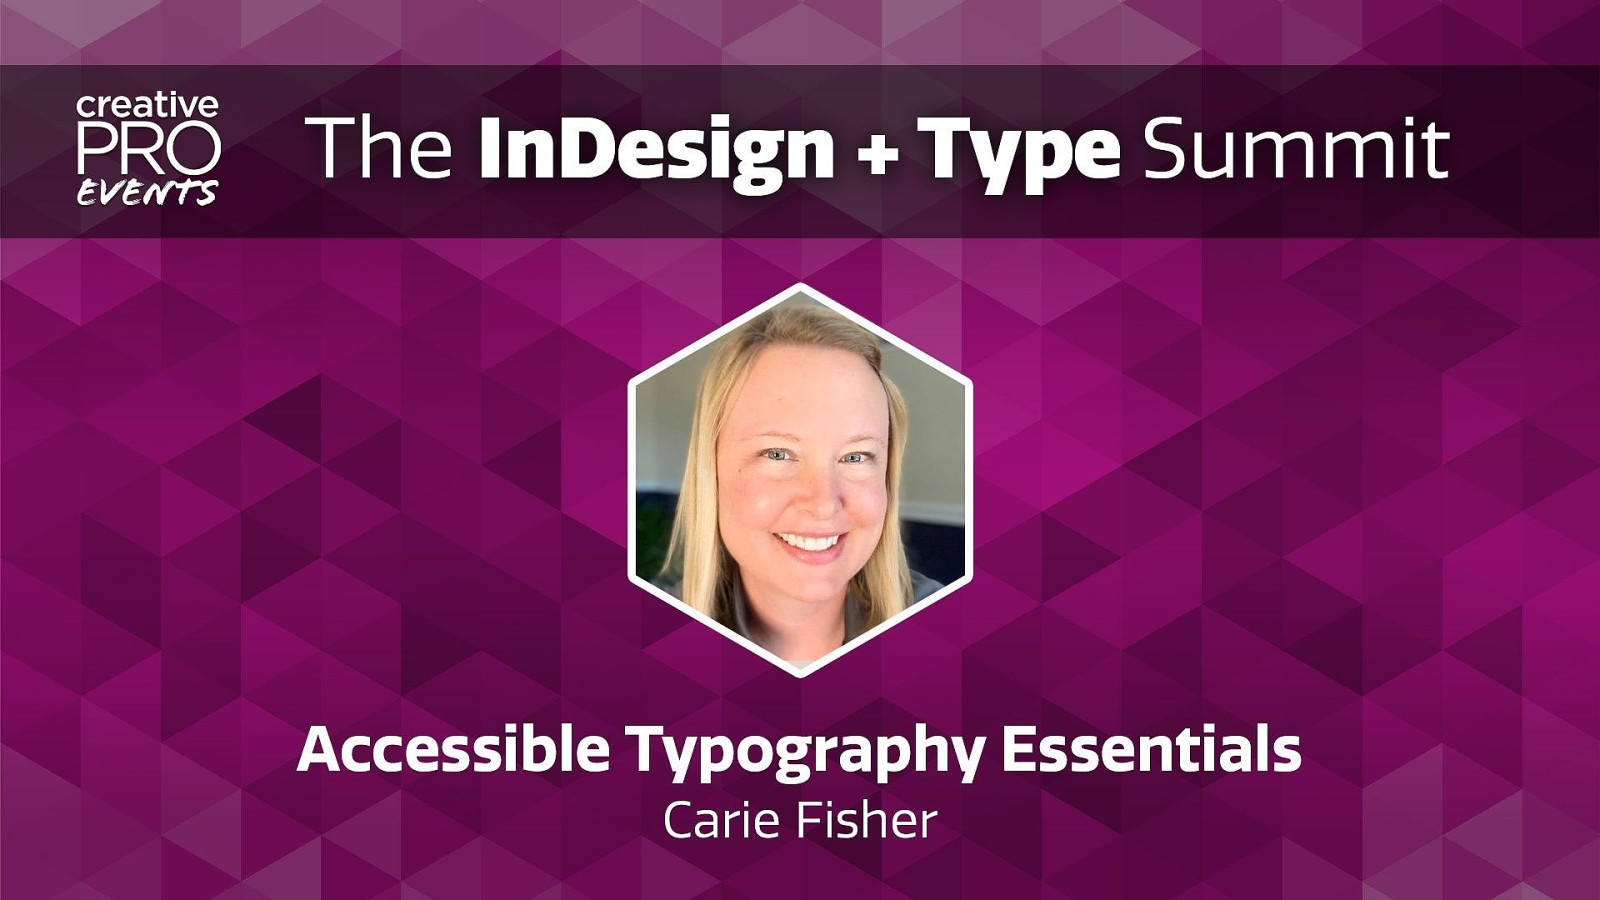 Accessible Typography Essentials